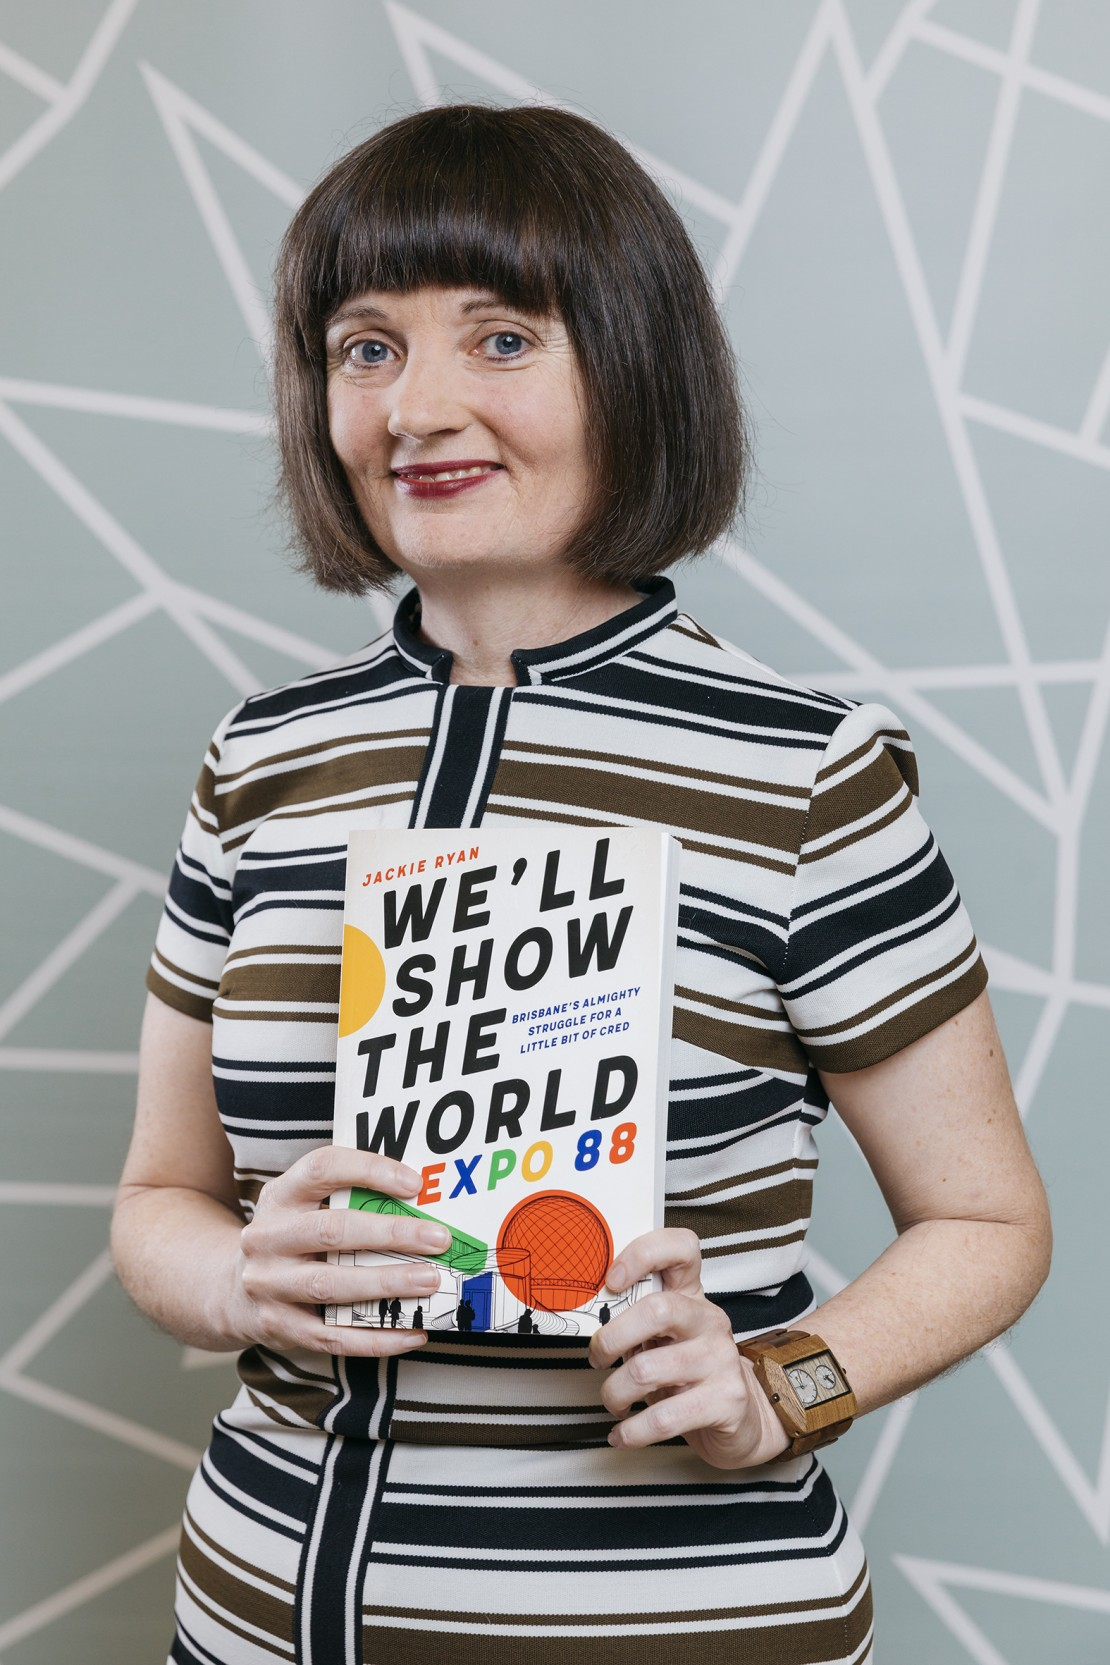 Jackie Ryan holding her book Well Show the World Expo 88